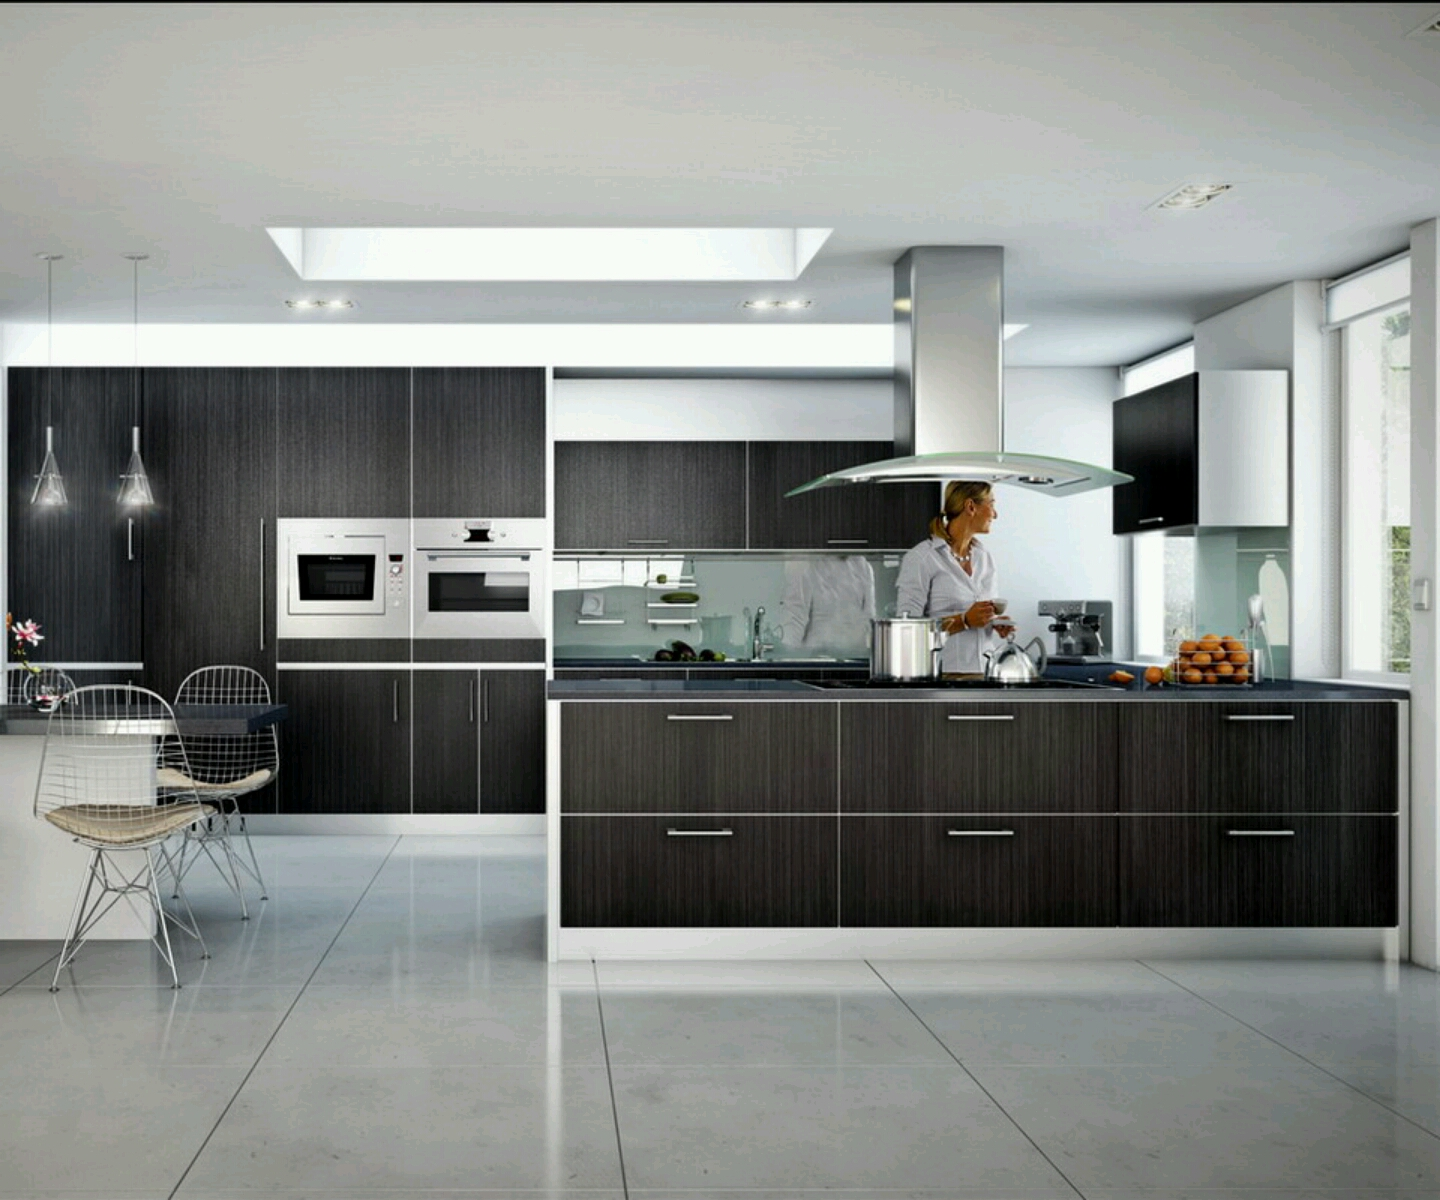 Modern Homes Ultra Modern Kitchen Designs Ideas New Home Designs Rh  Thetiredtory Blogspot Com